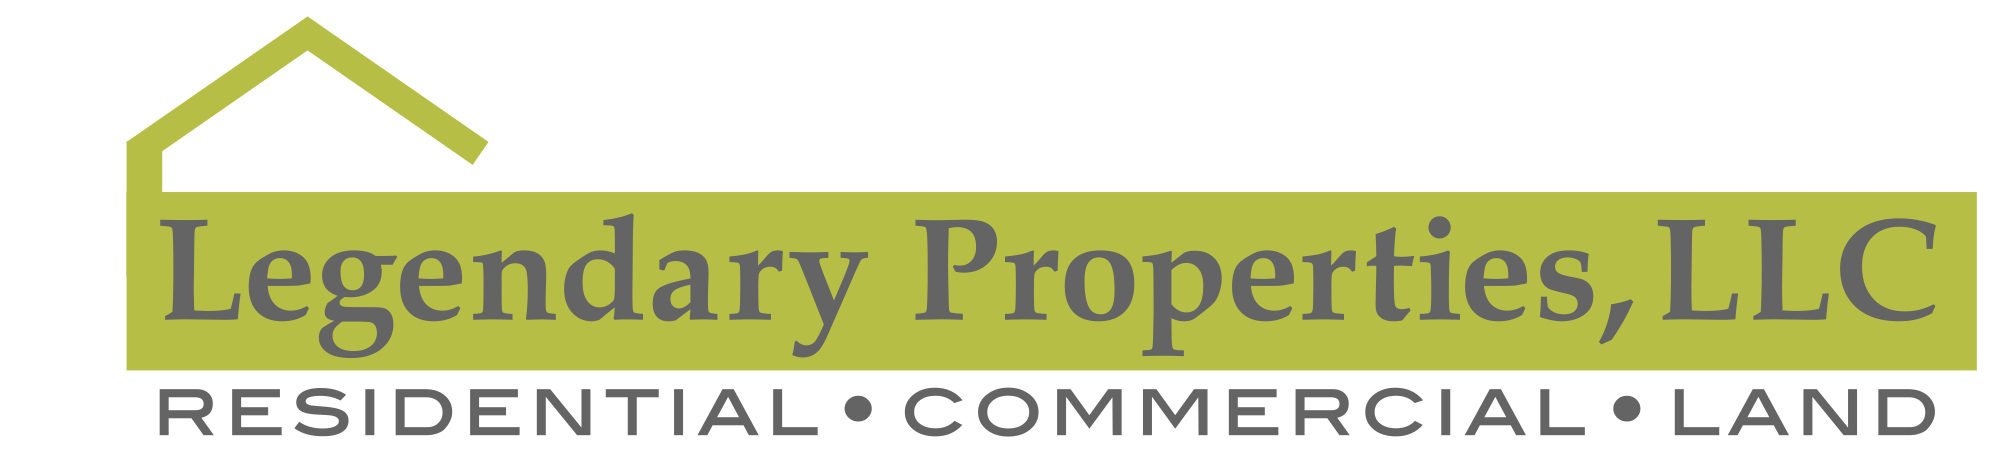 Legendary Properties LLC